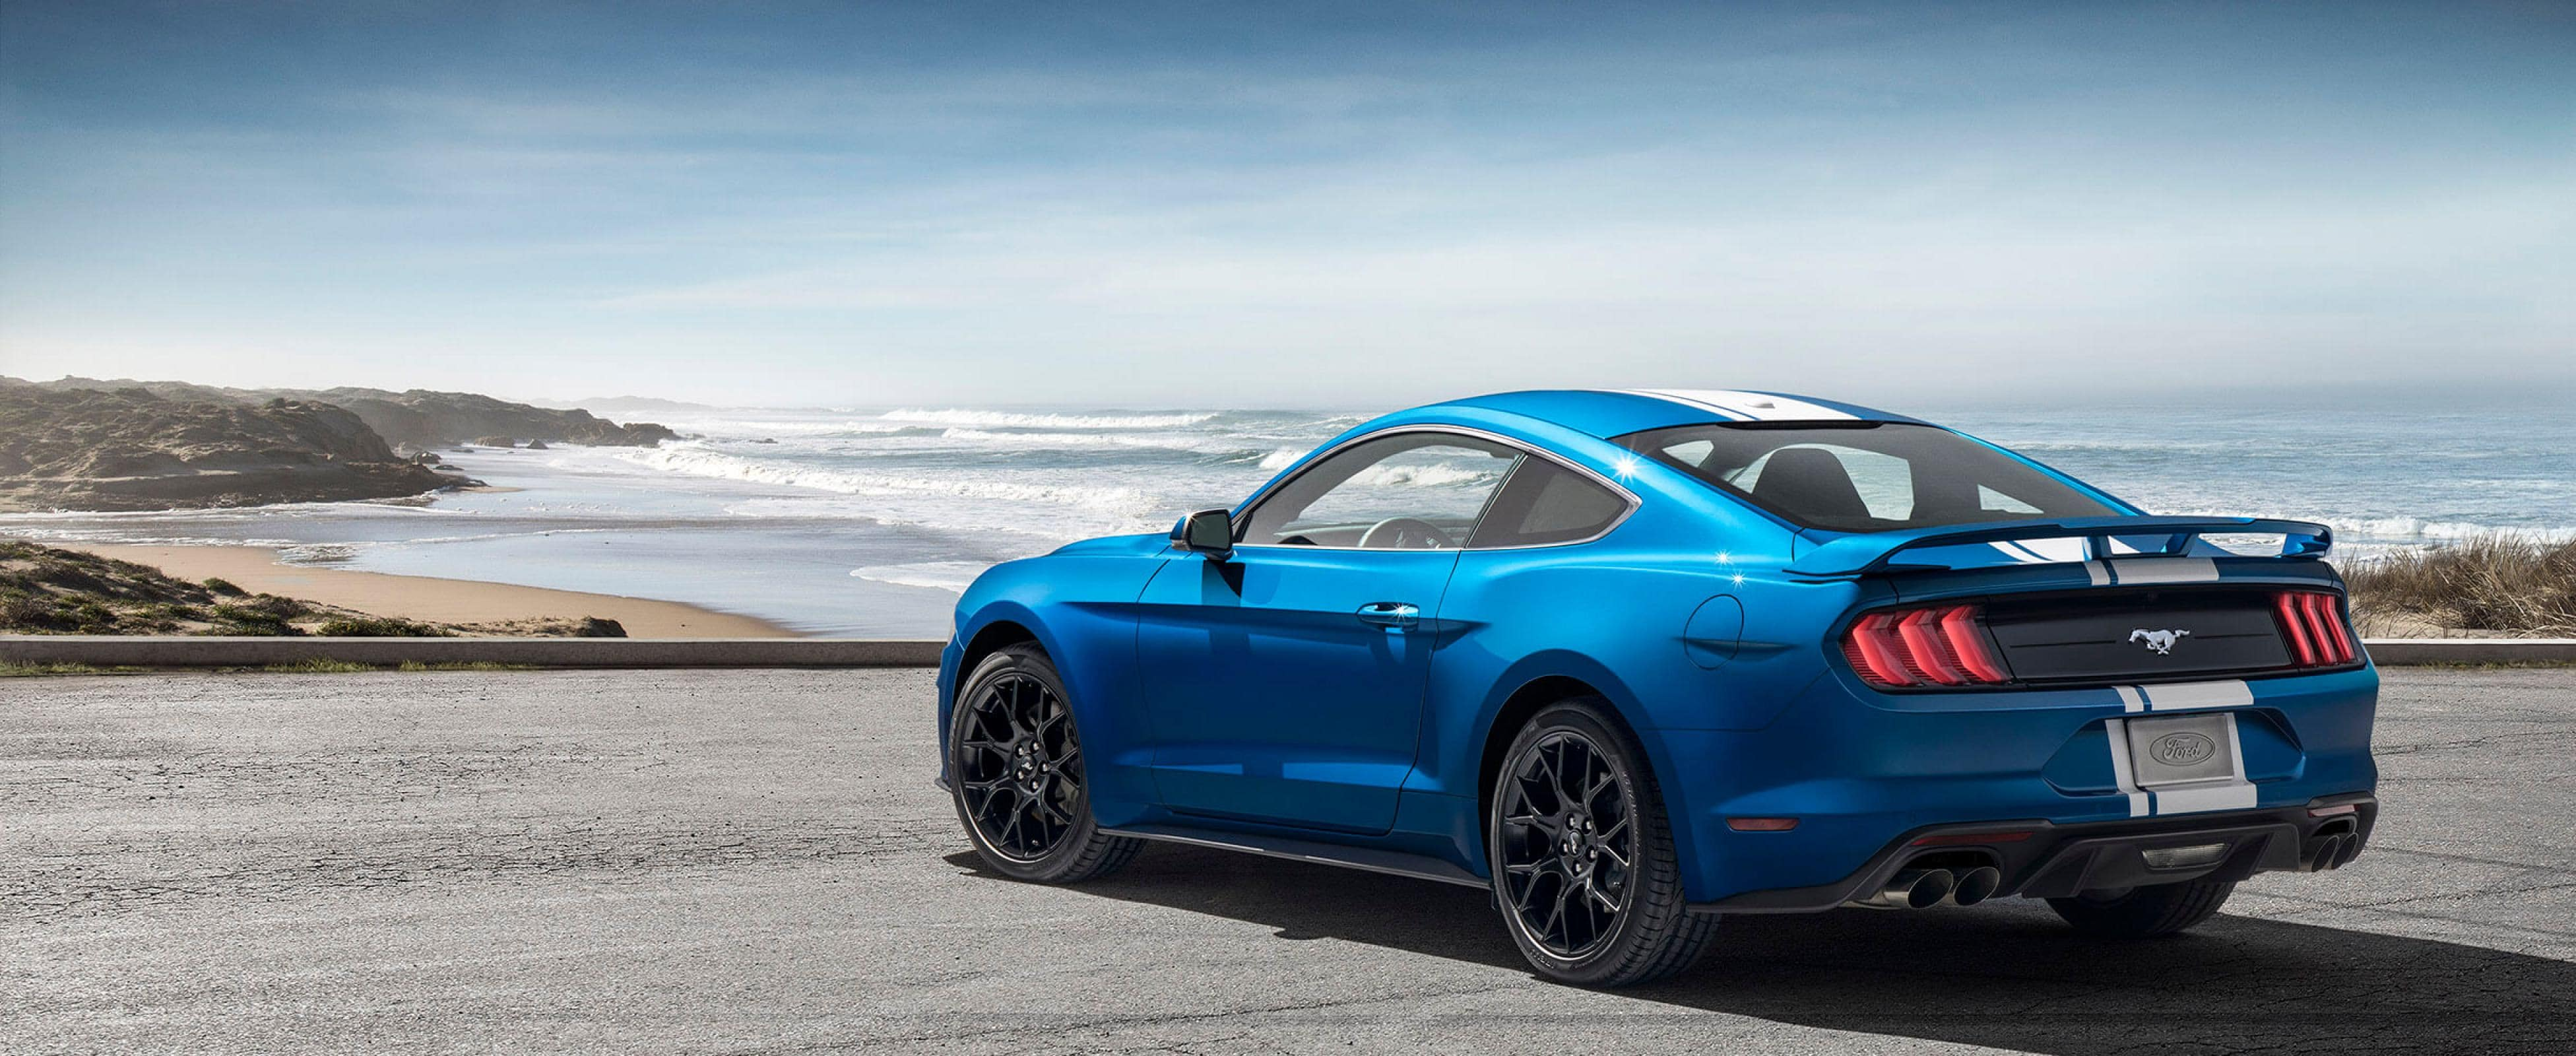 Mustang Gt Rental >> Sports Car Rental Ford Mustang Similar Budget Rent A Car